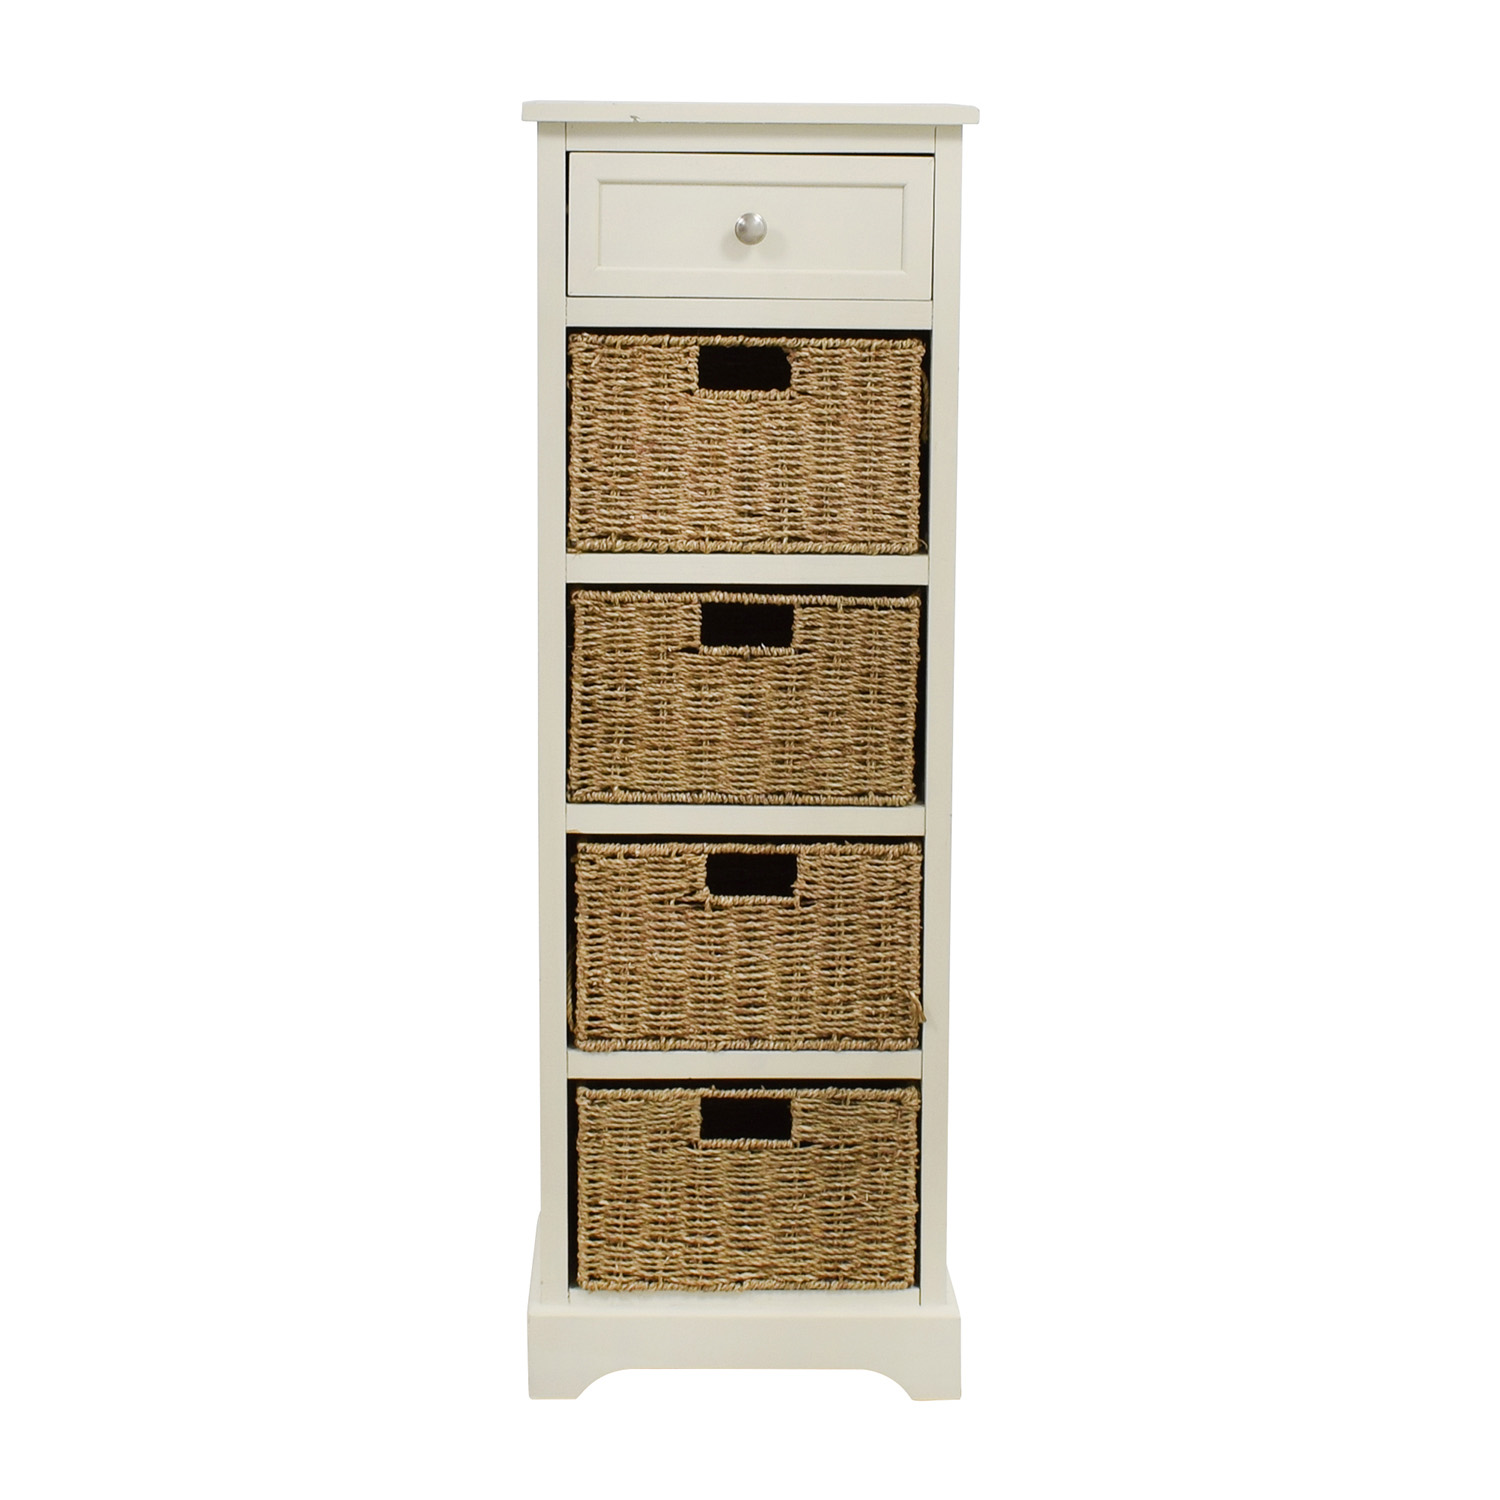 Tall White Storage Unit with Drawer and Wicker Baskets / Dressers